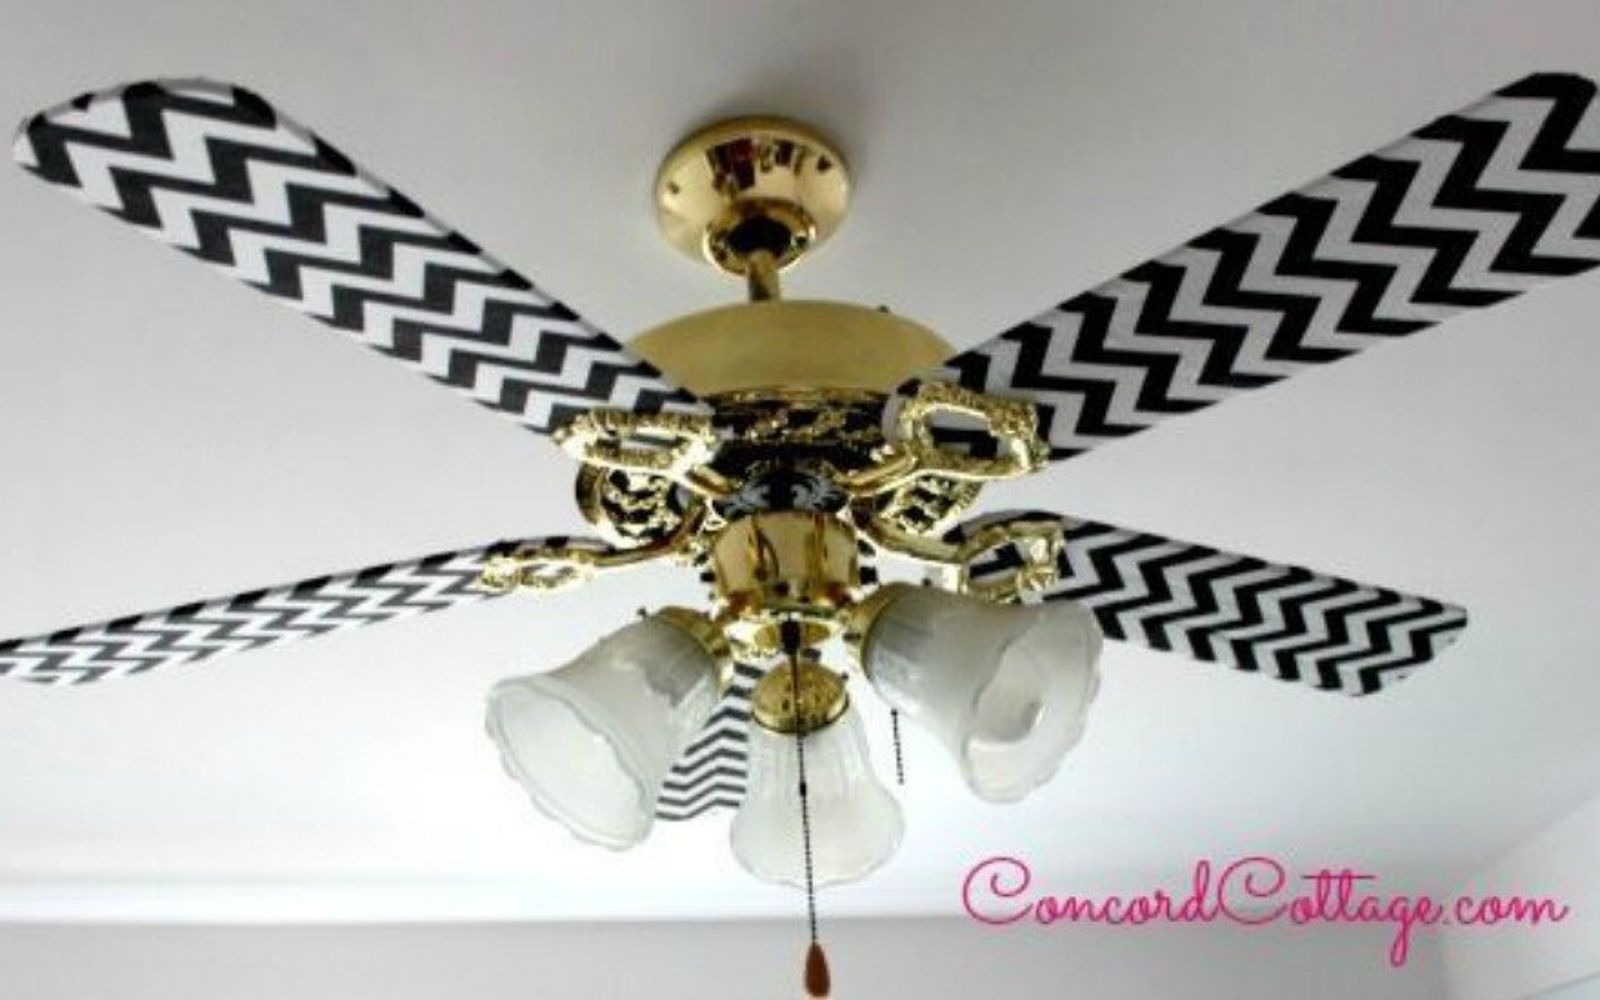 s 13 ways to upgrade your boring ceiling fan on a budget, appliances, wall decor, Cover the fan blades in fun fabric